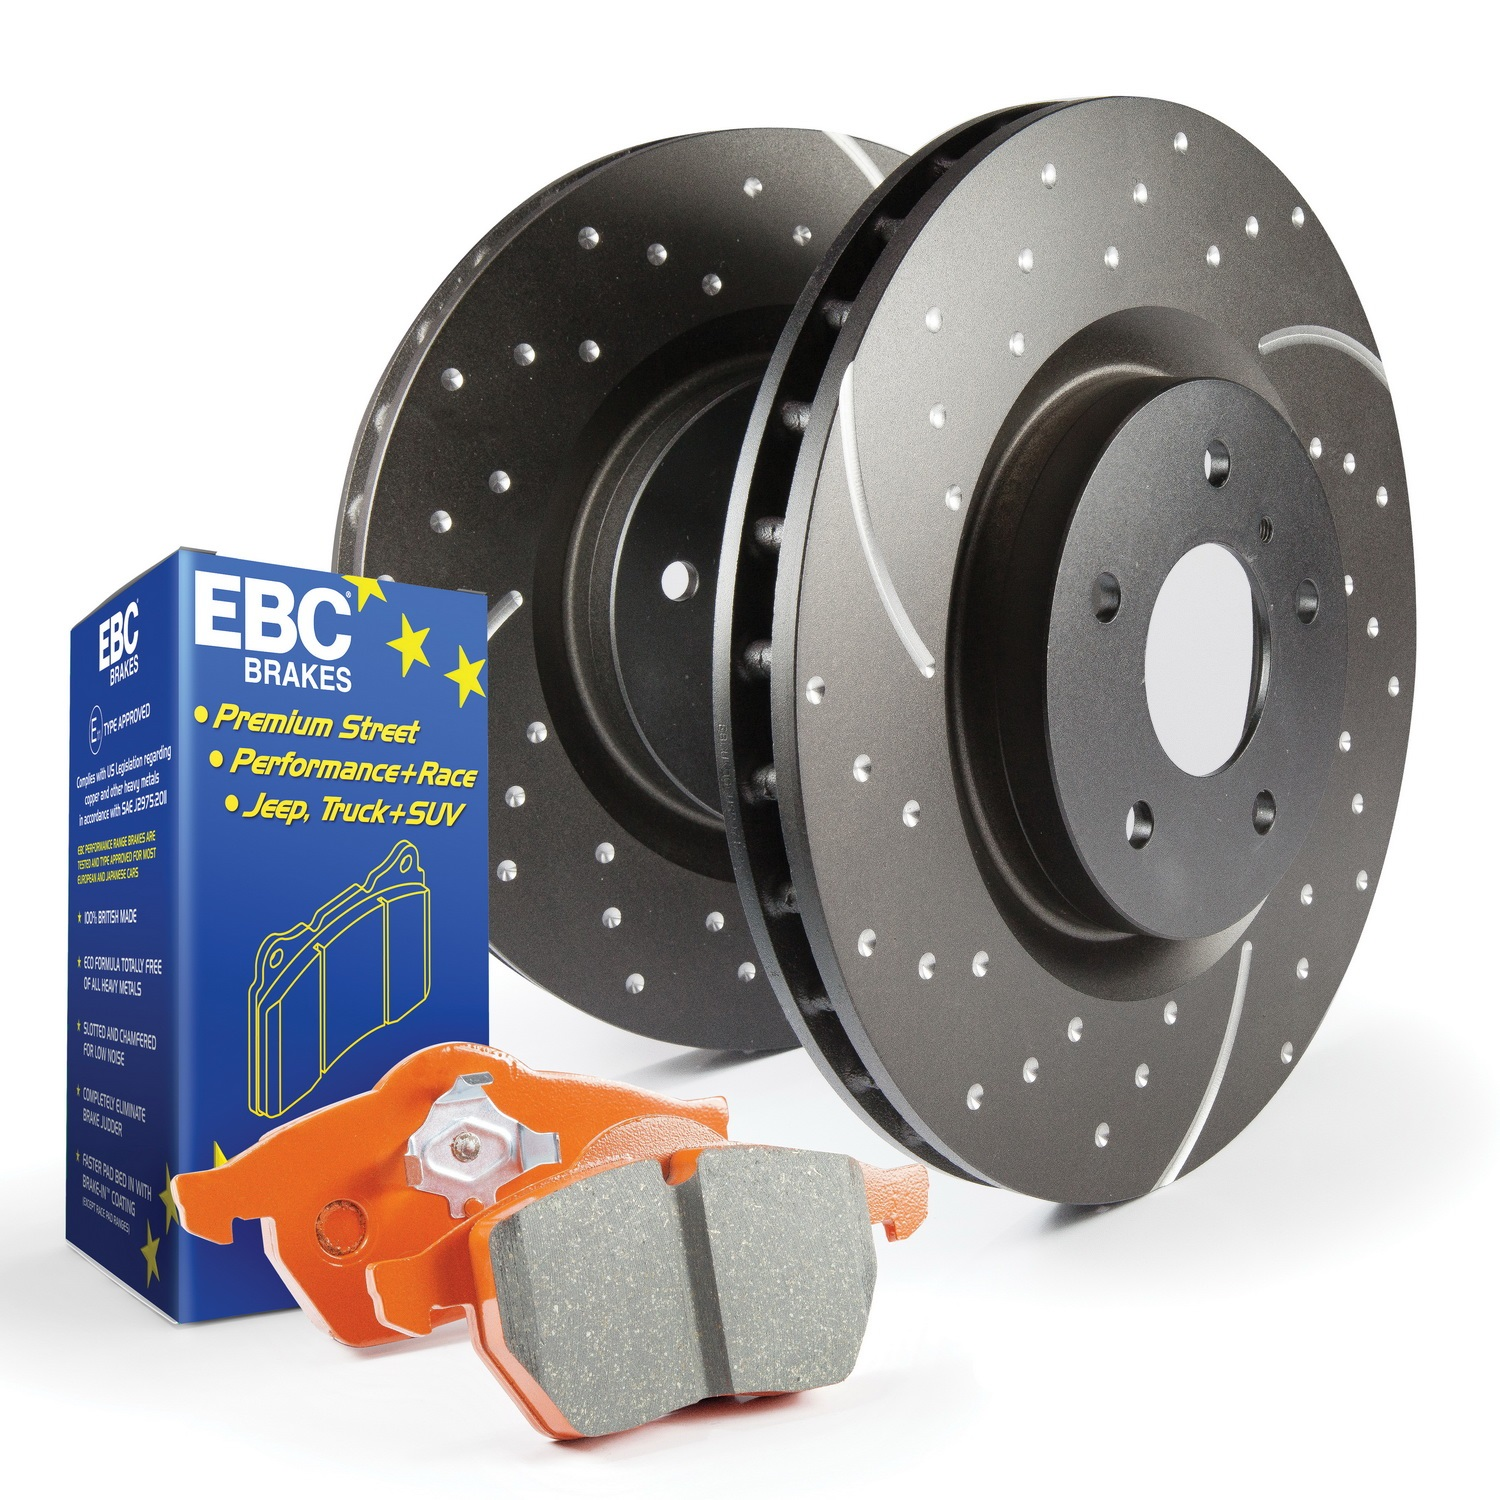 EBC Brakes S8KF1192 S8 Kits Orangestuff And GD Rotor Fits 15-19 Outback